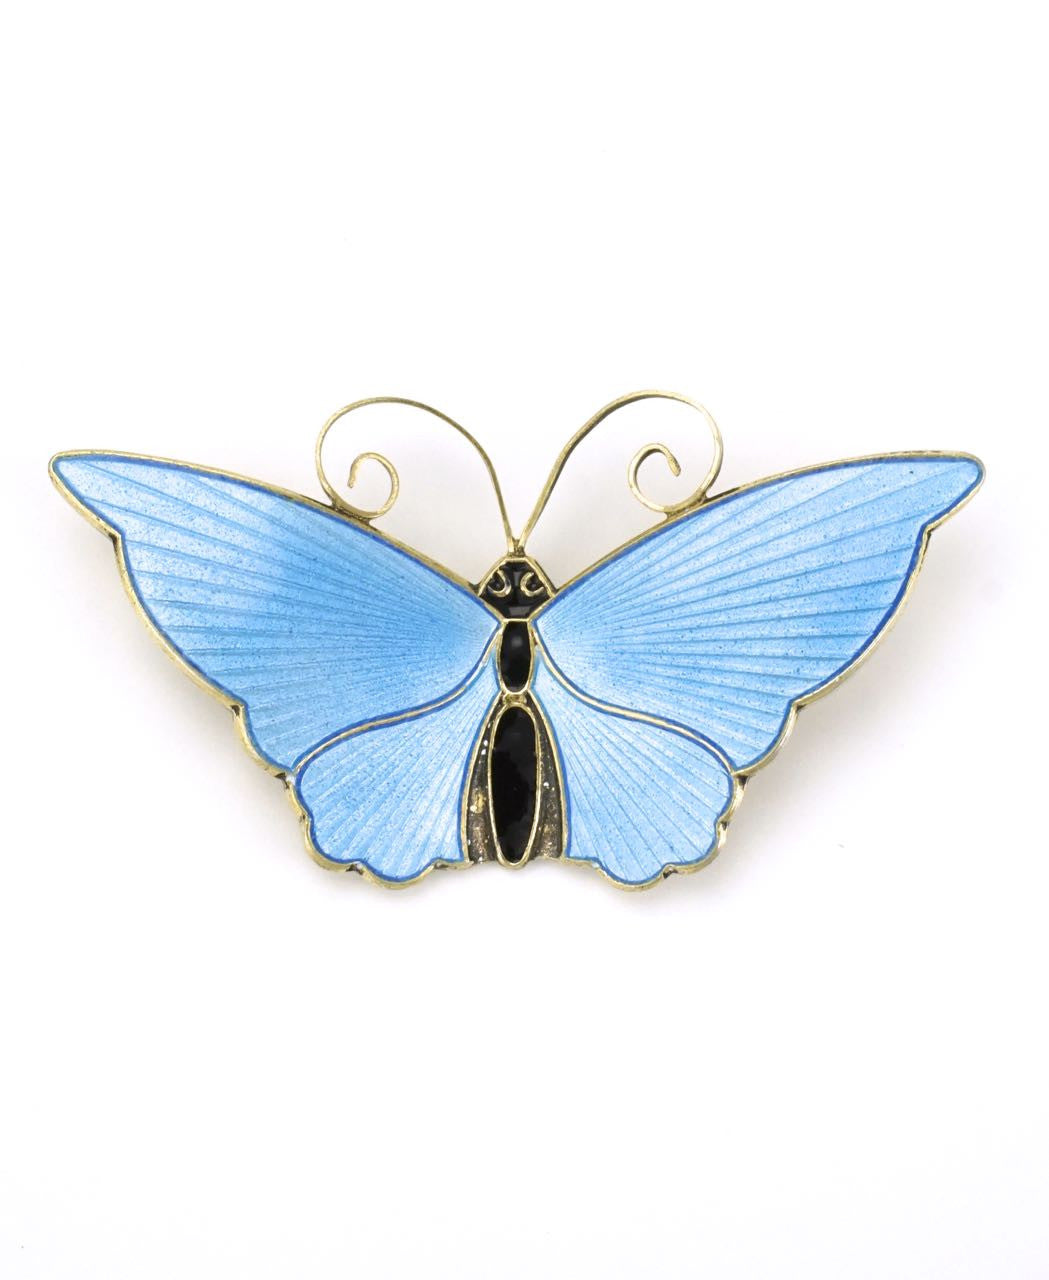 Norwegian silver and blue enamel butterfly brooch 1950s